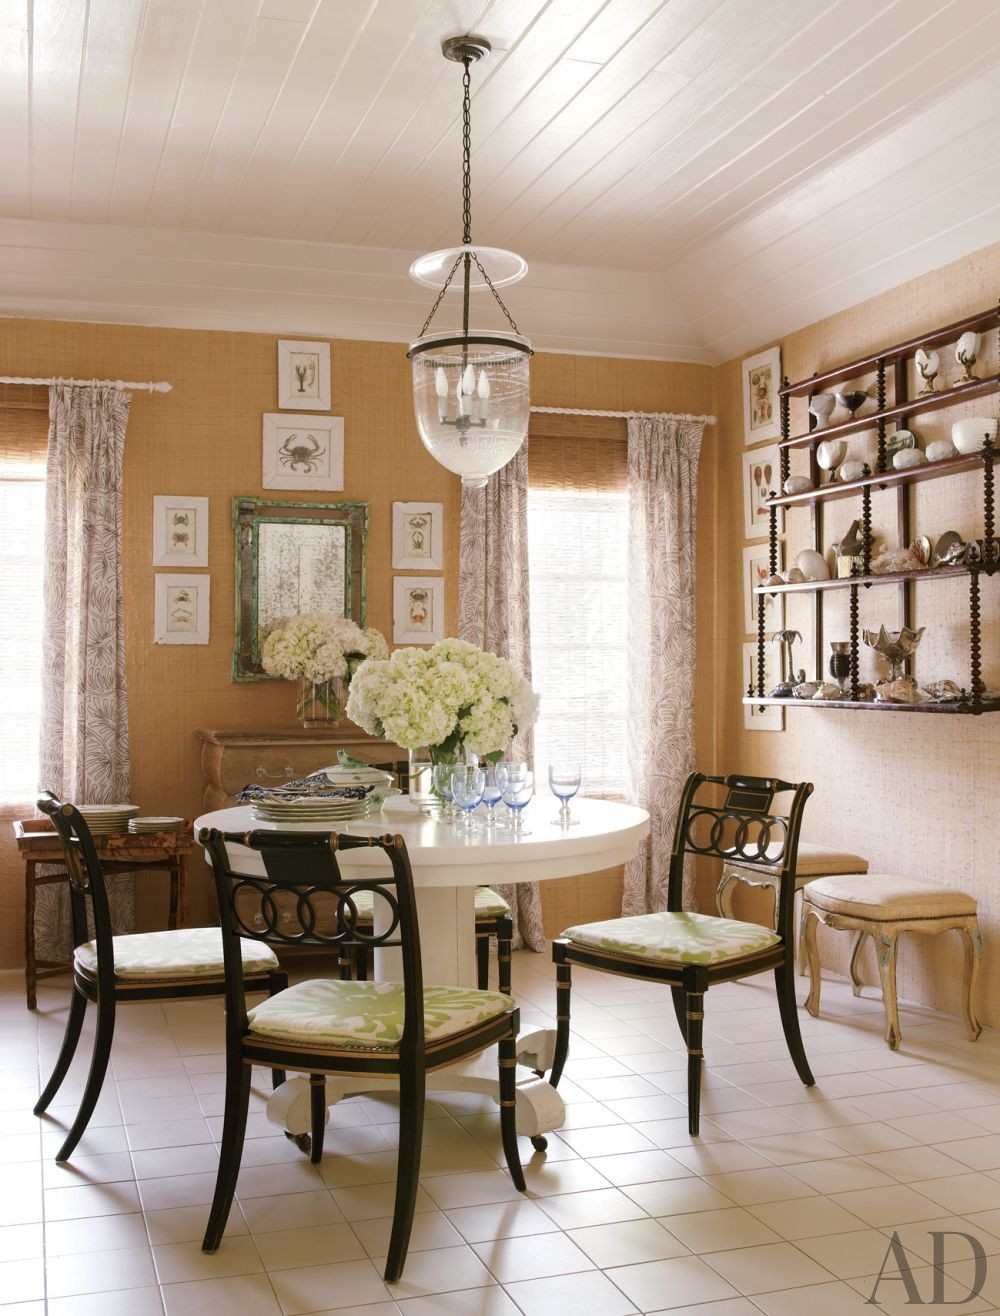 Beach dining room by andrew raquet interior design by for Beachy dining room ideas